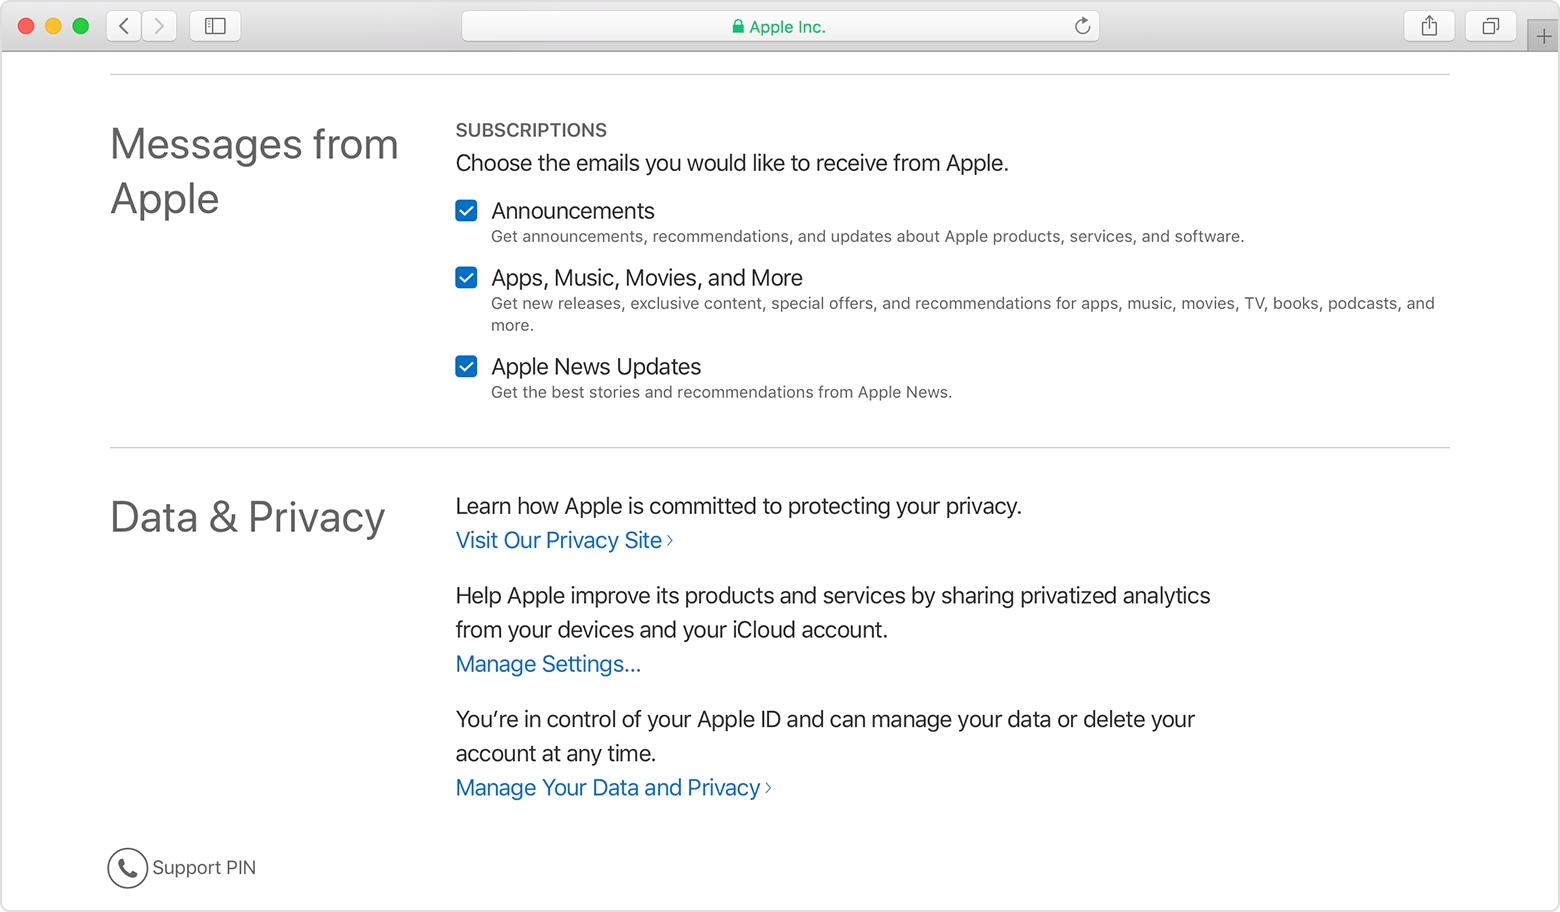 Manage Your Apple ID webpage showing checked checkboxes next to email subscriptions